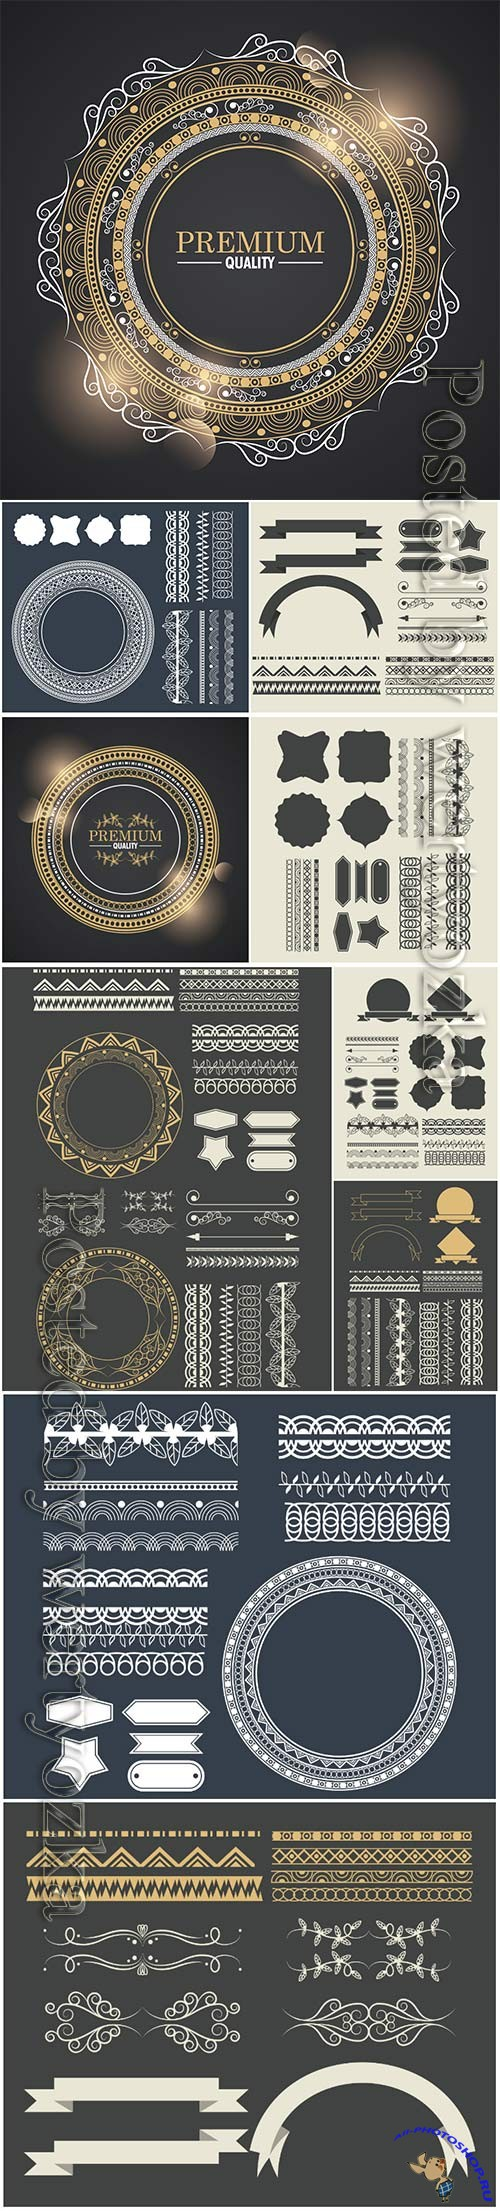 Set of ribbons, borders, decorative elements